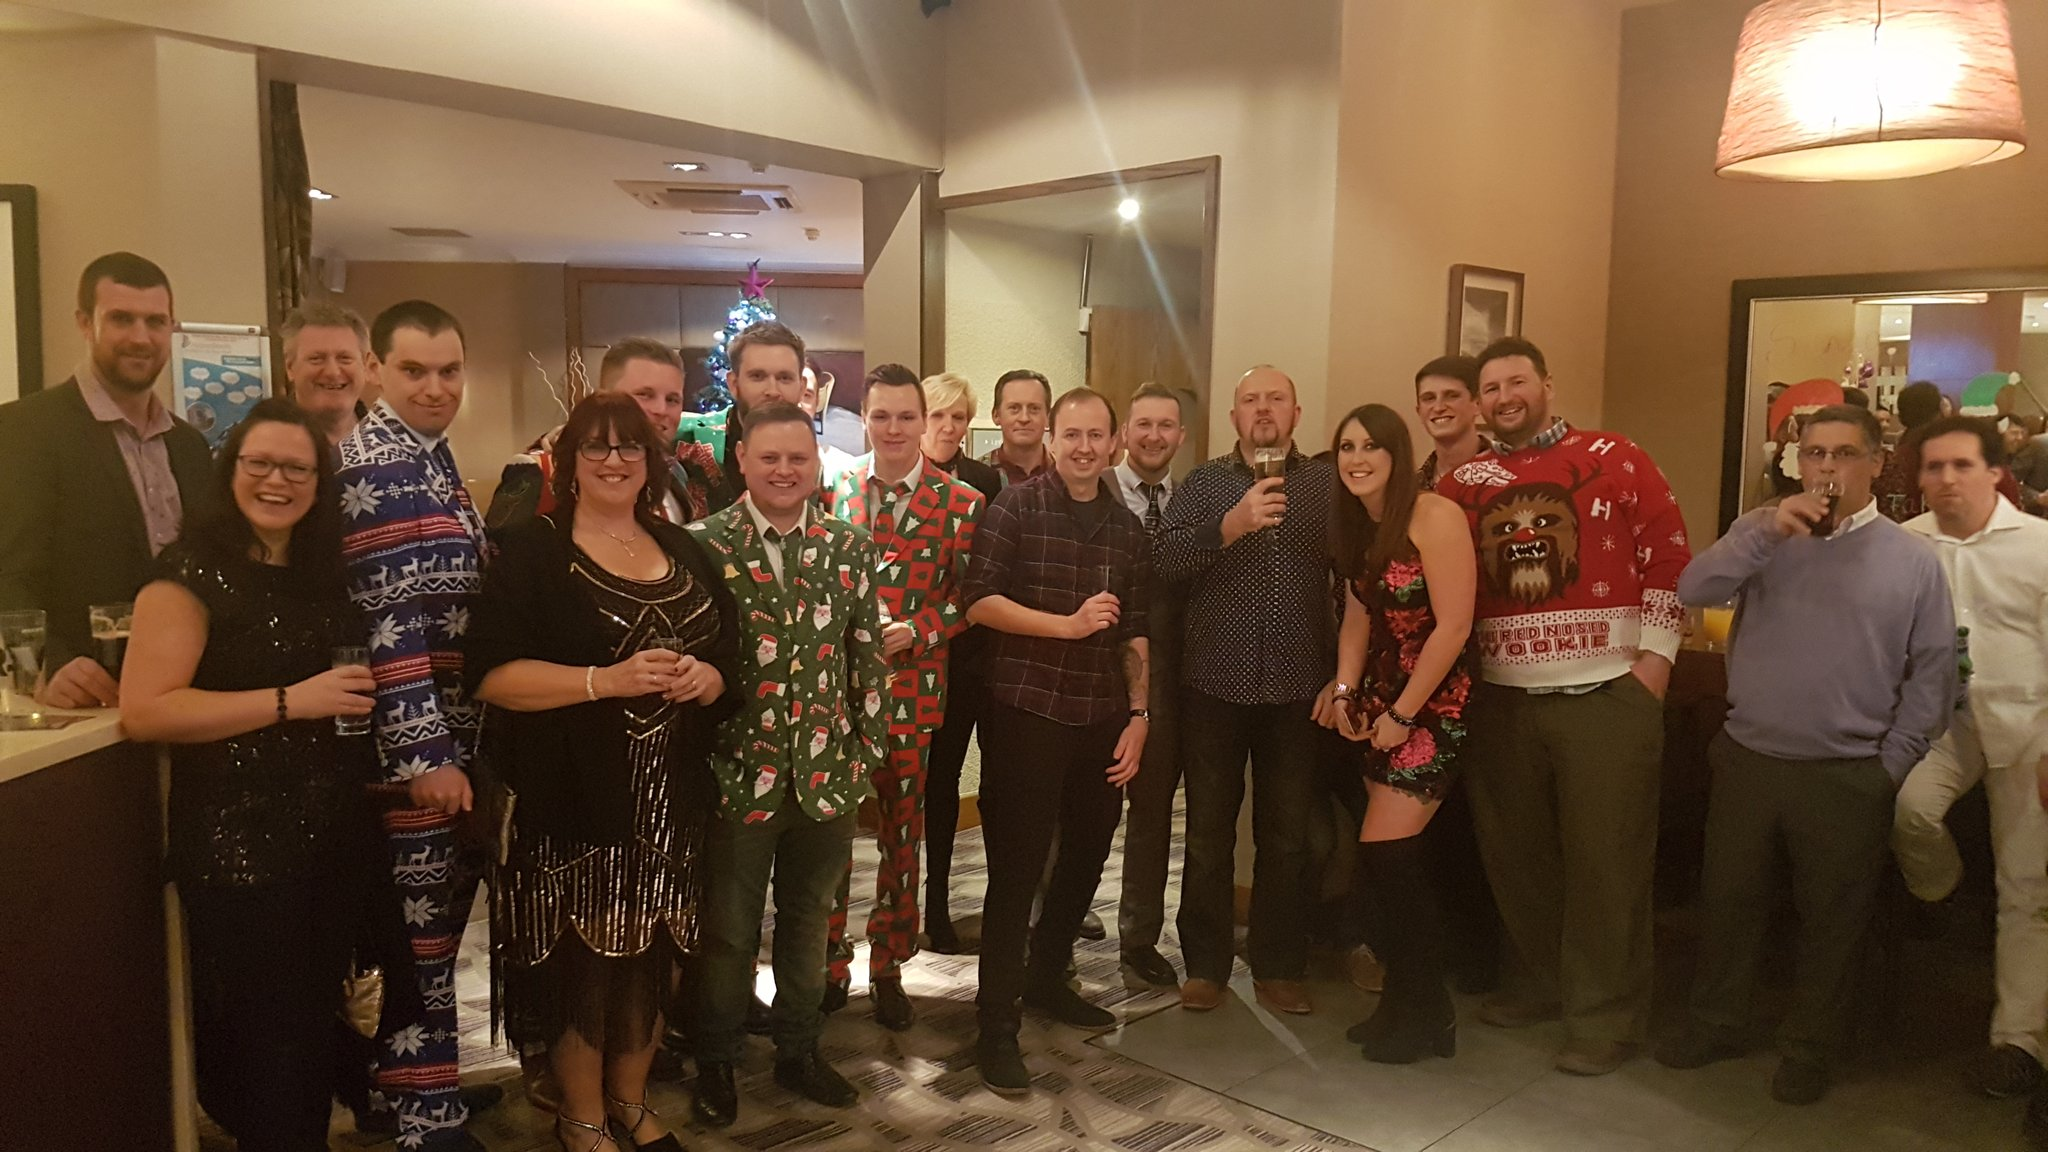 The SUMO team dressed up for our annual Christmas function